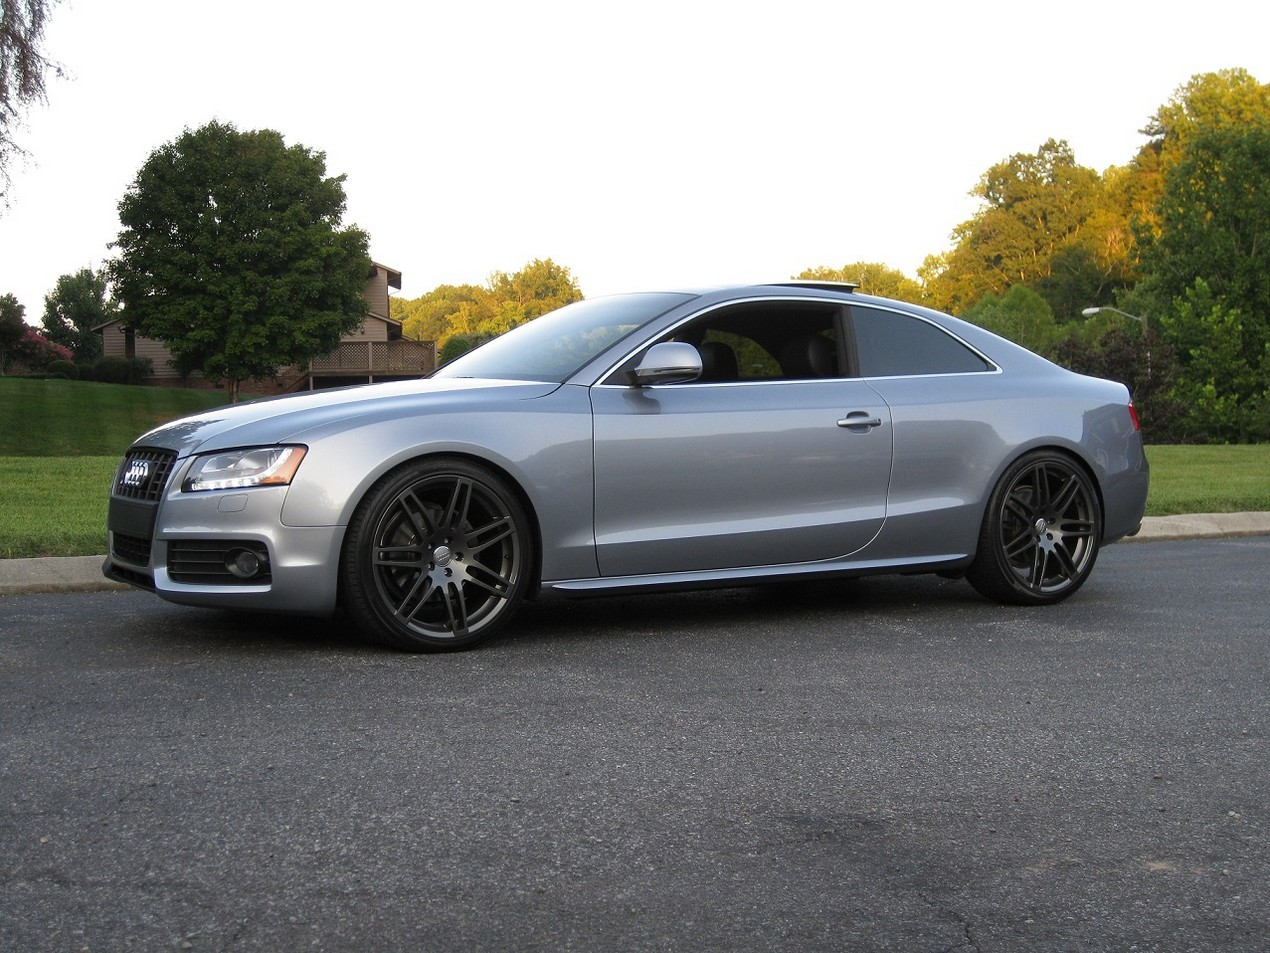 A5 Audi A5 Tuning Suv Tuning